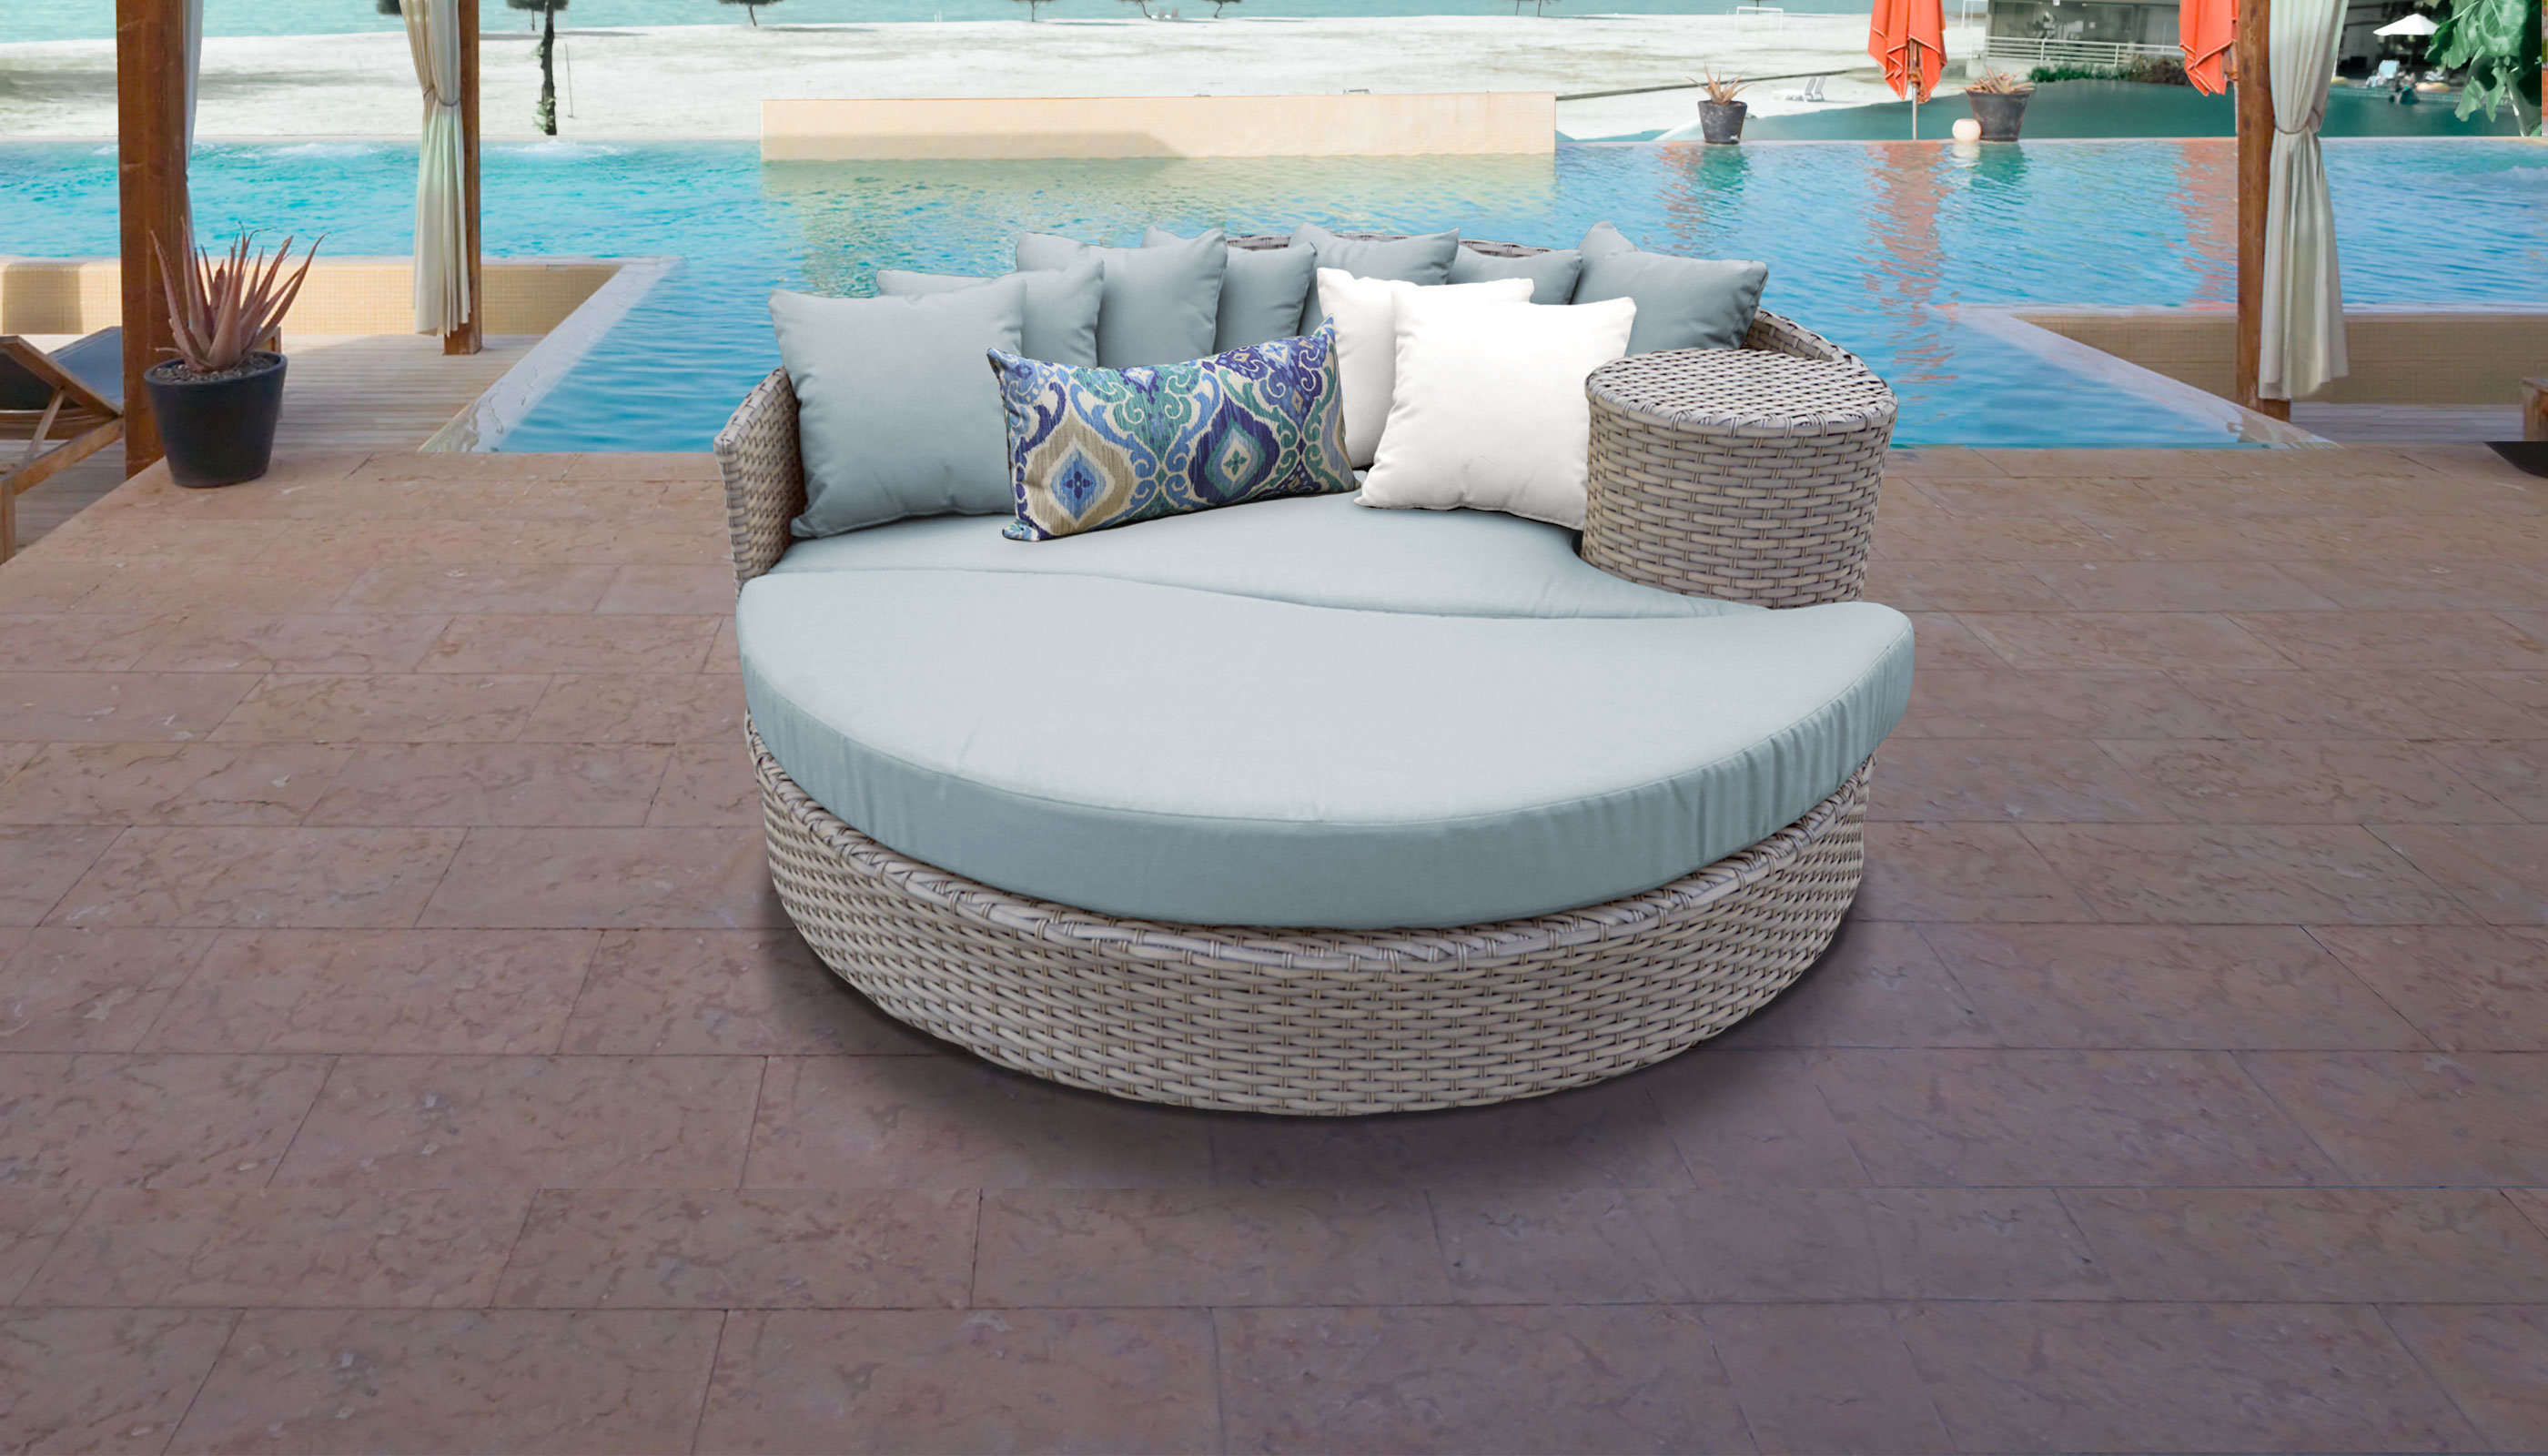 Greening Outdoor Daybeds With Ottoman & Cushions Pertaining To Preferred Rochford Circular Patio Daybed With Cushions (View 6 of 20)